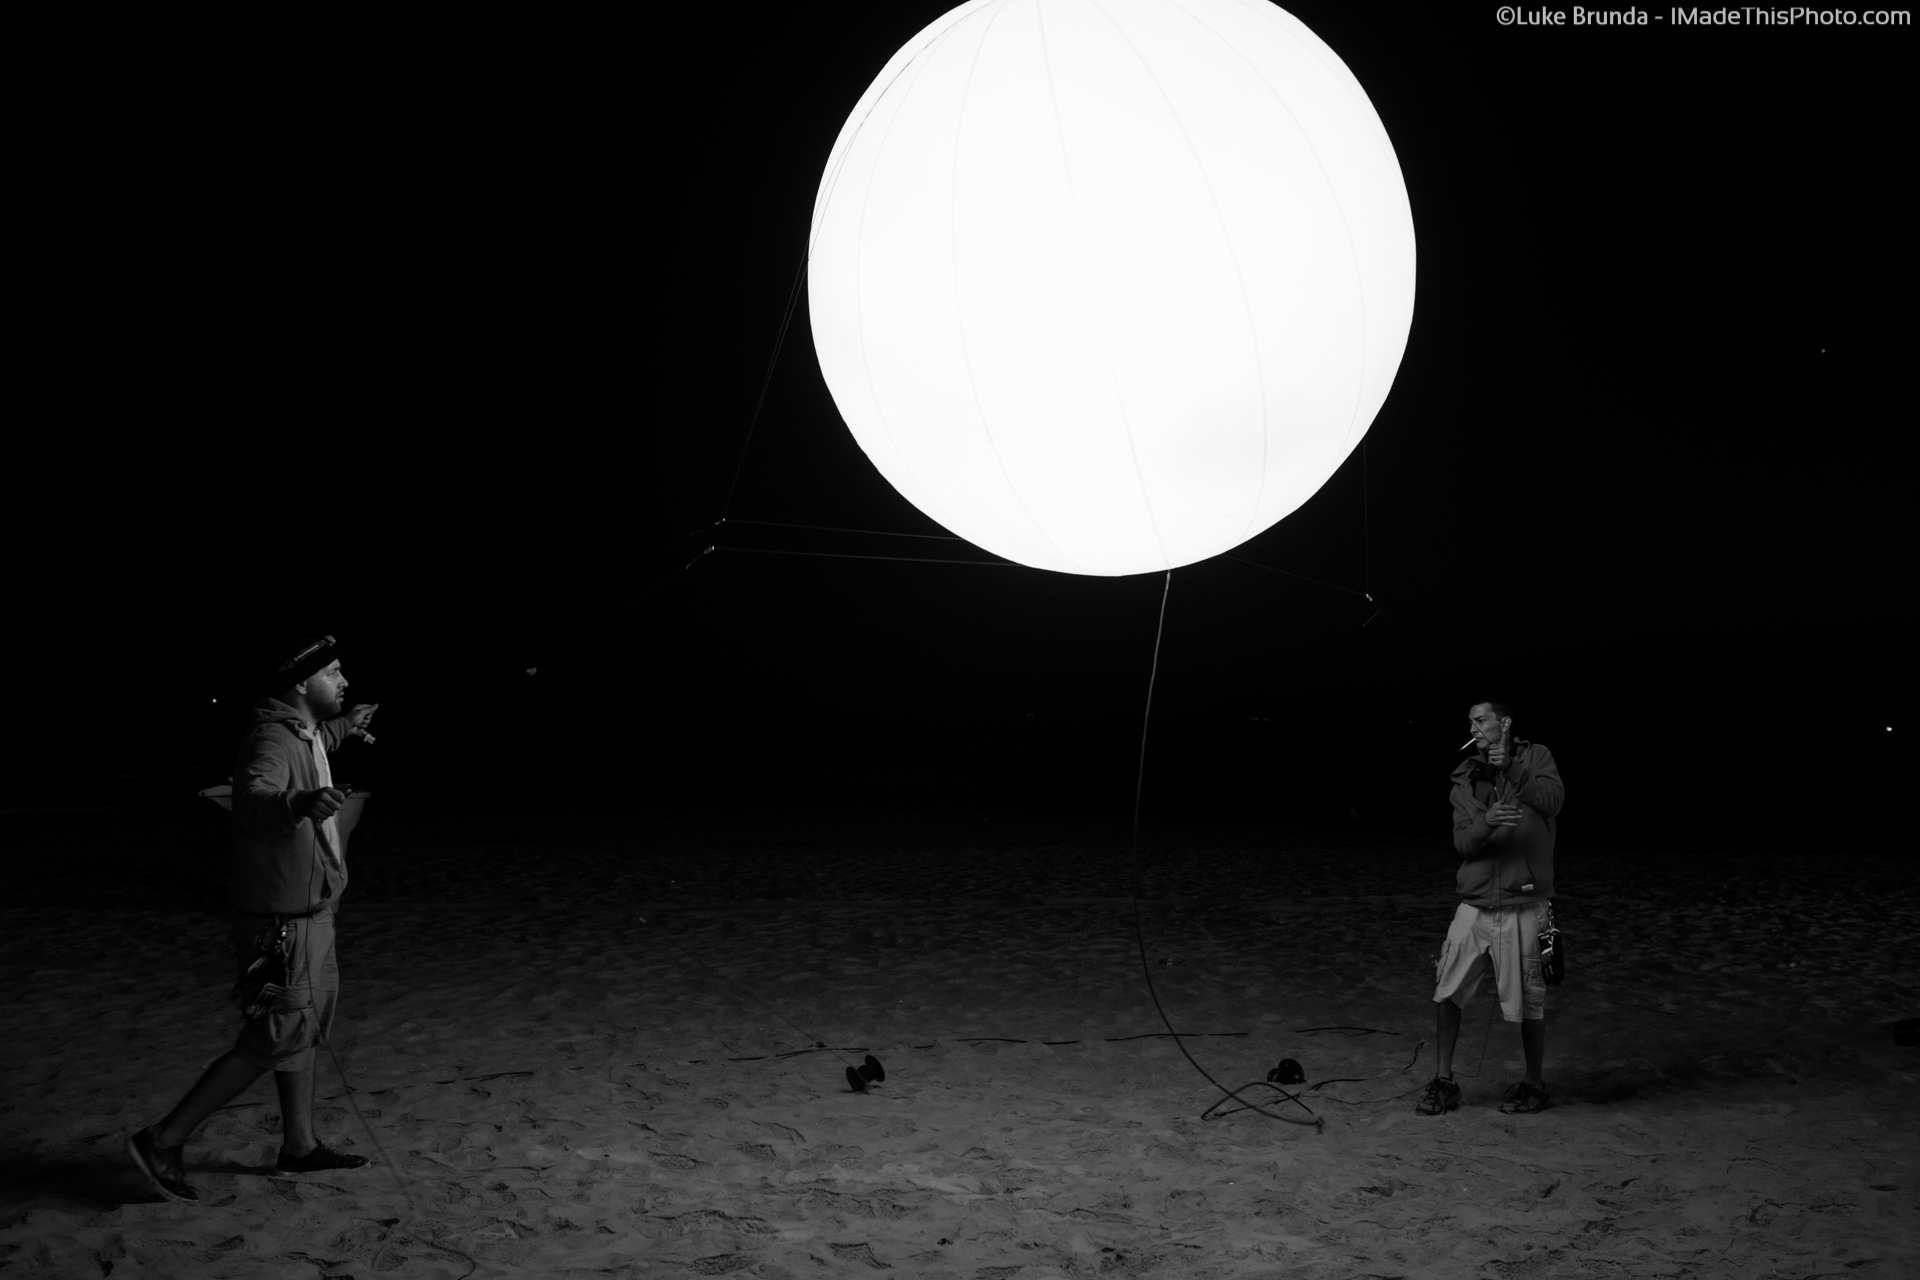 Two men raising a lighted orb in the dark.